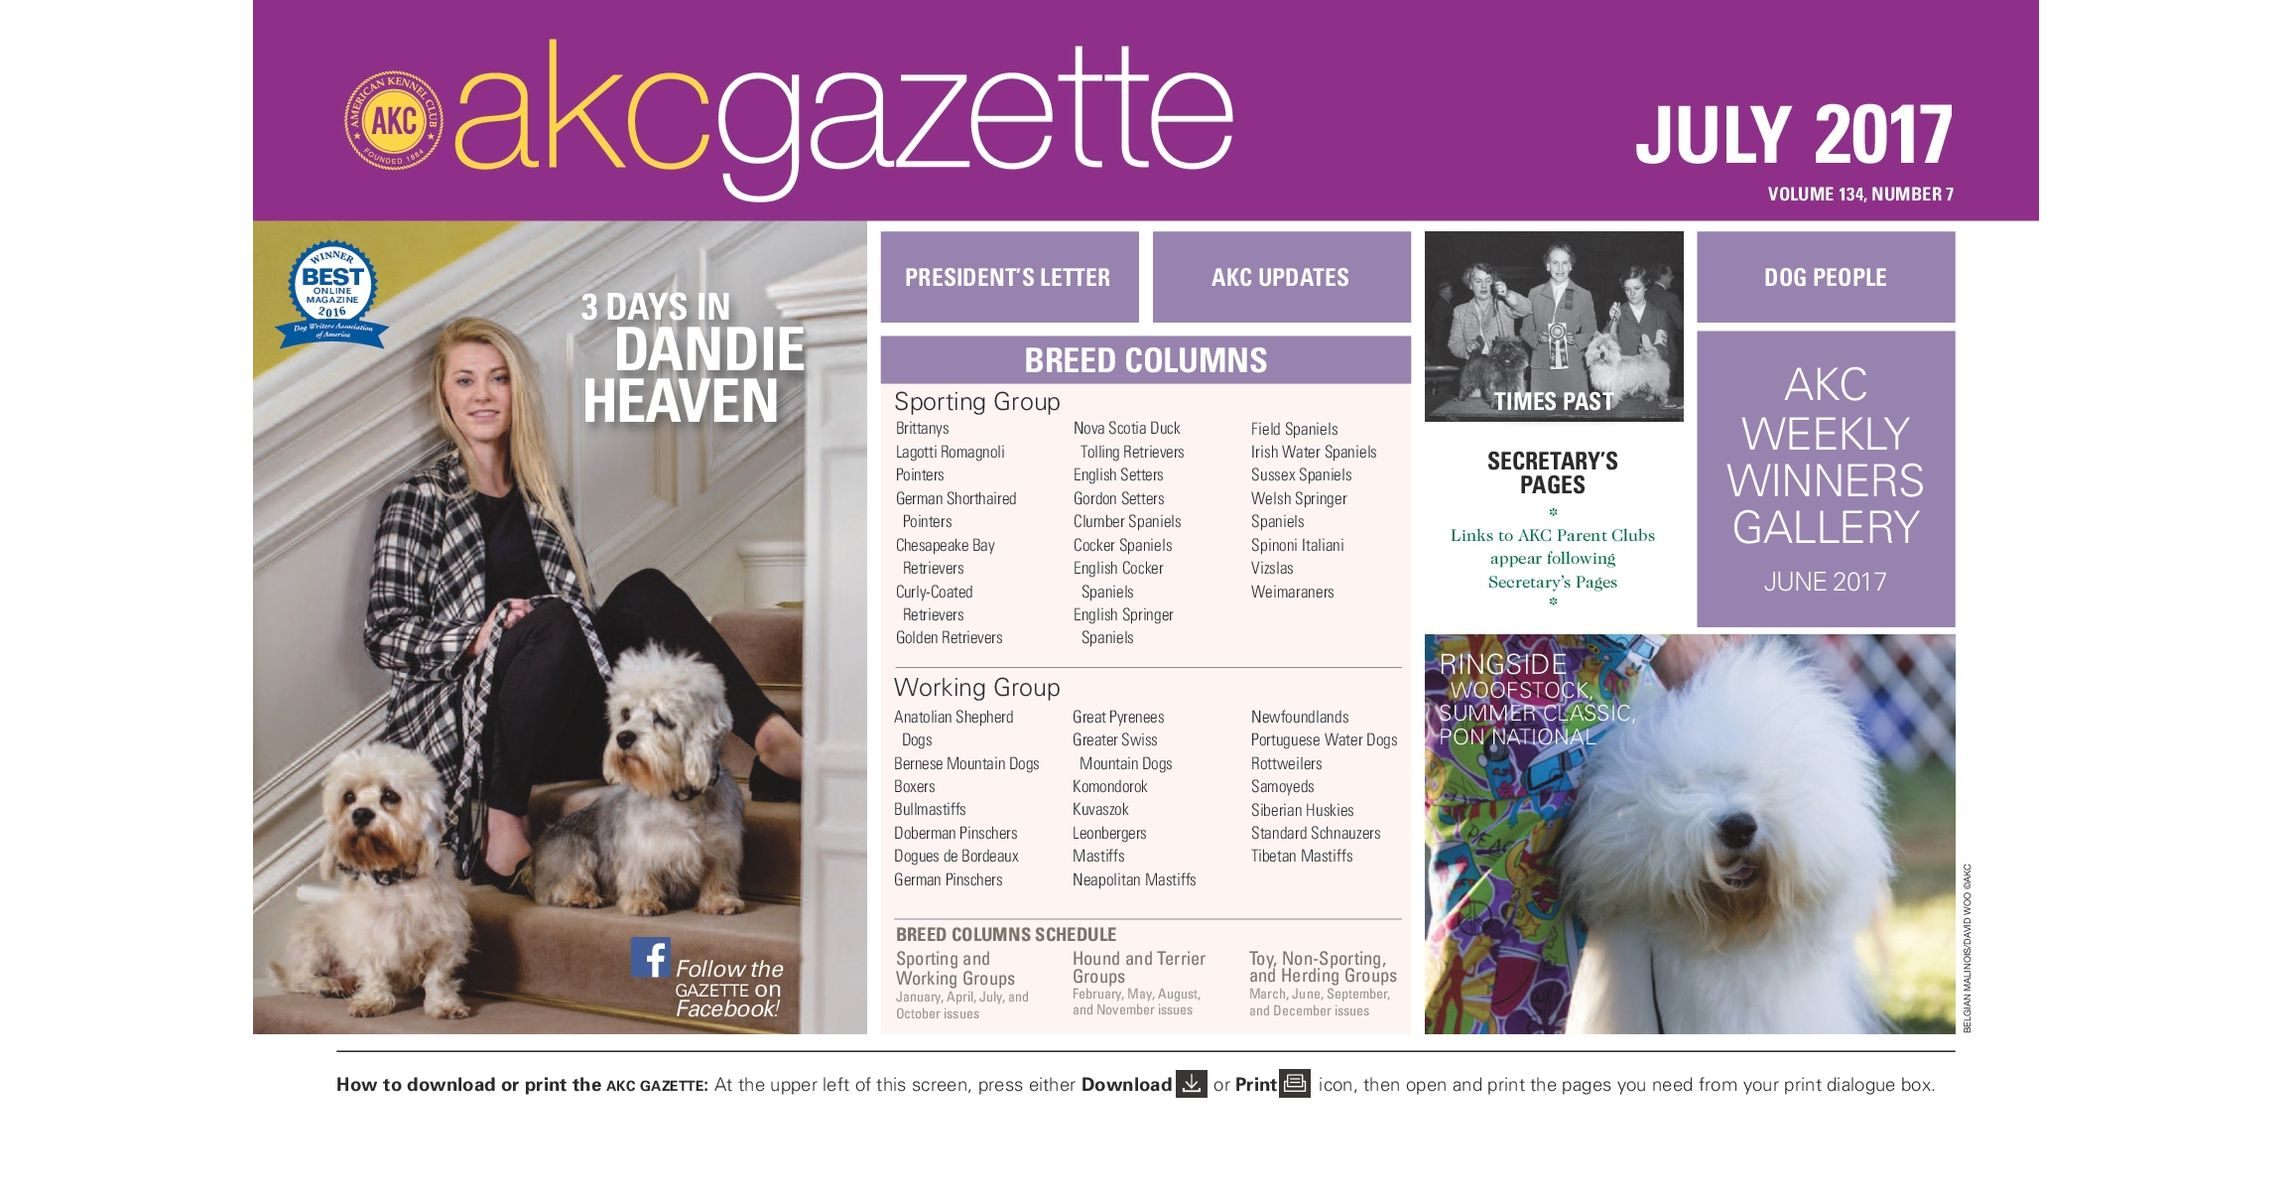 AKC Gazette July 2017